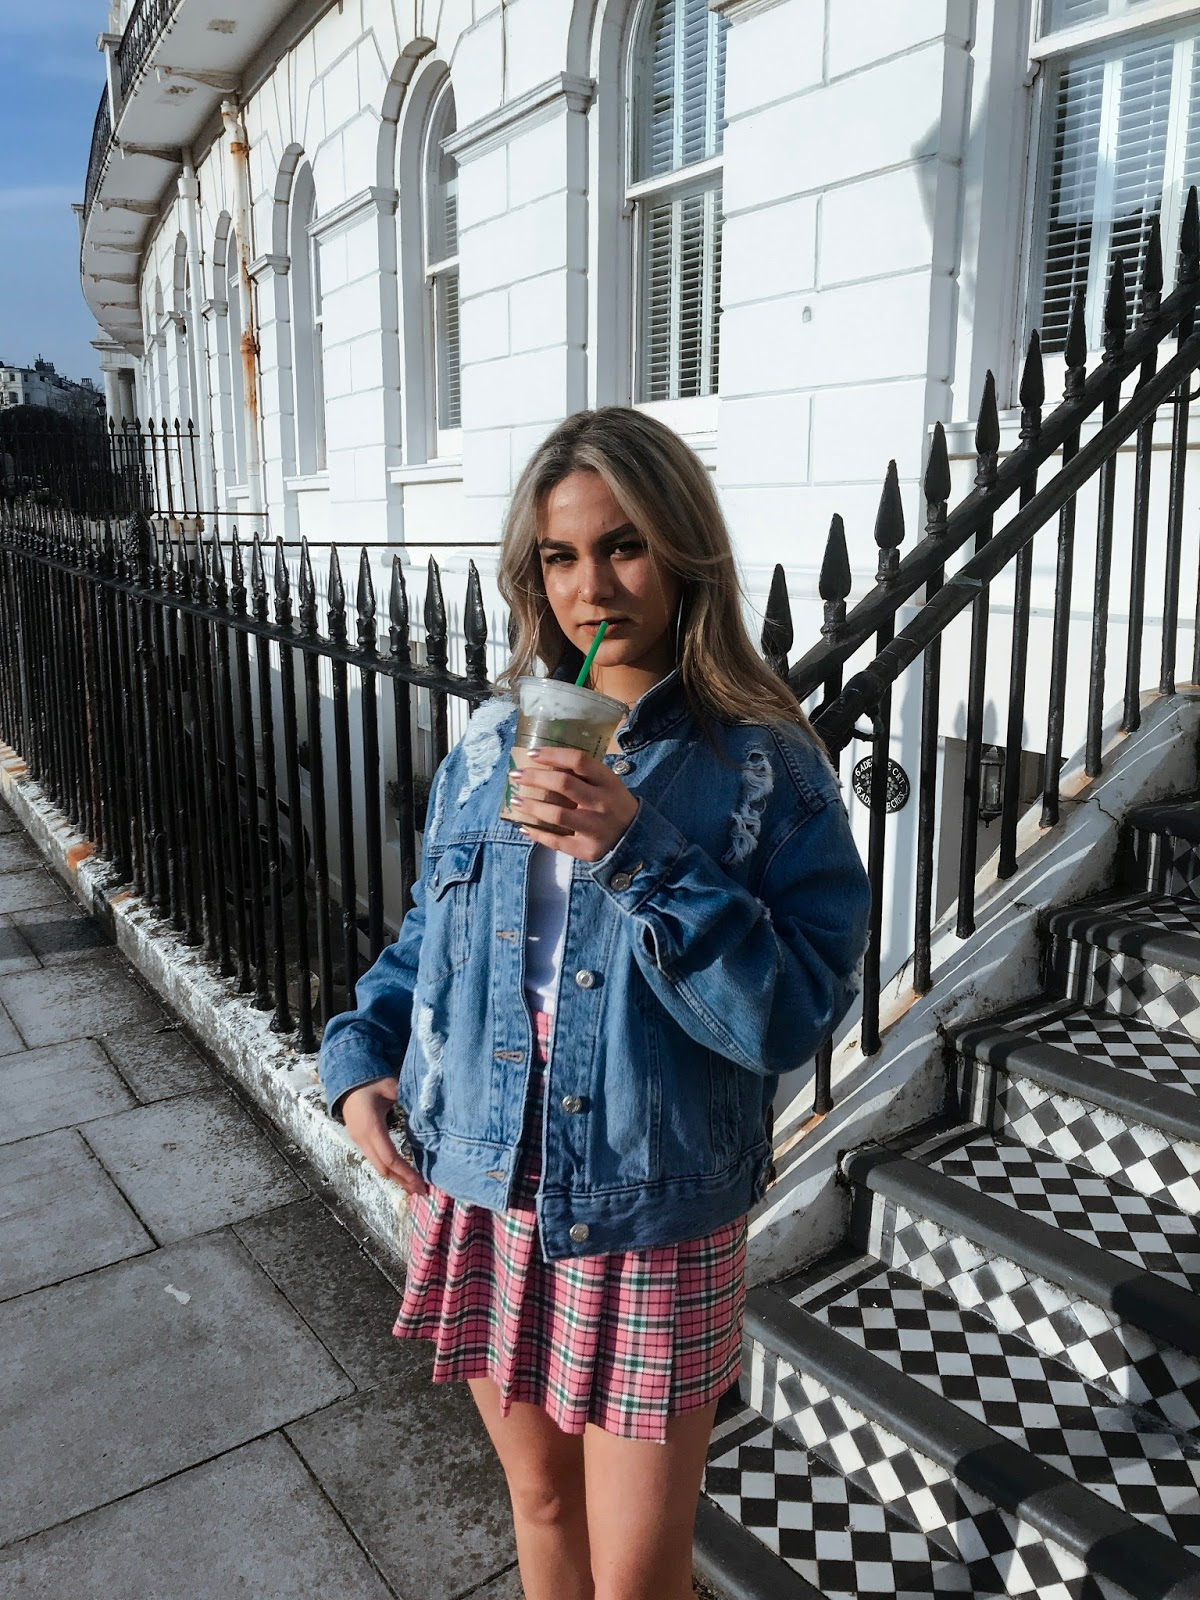 yasminstefanie topshop denim jacket plaid check pleat skirt